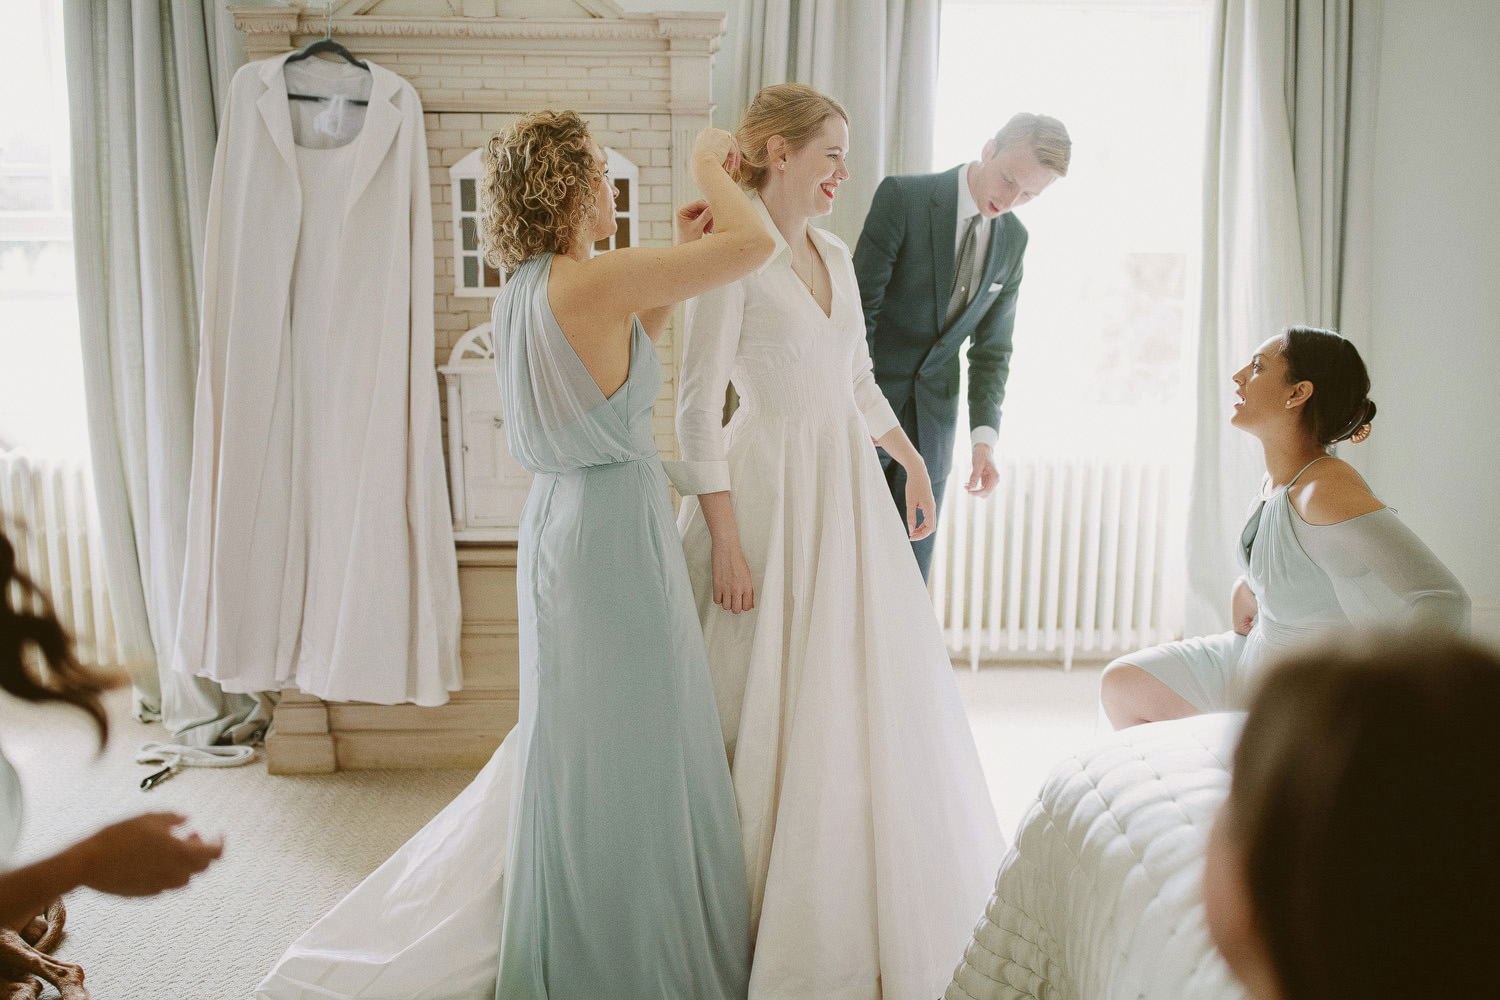 Bride gets ready with her bridesmaids during Suffolk wedding